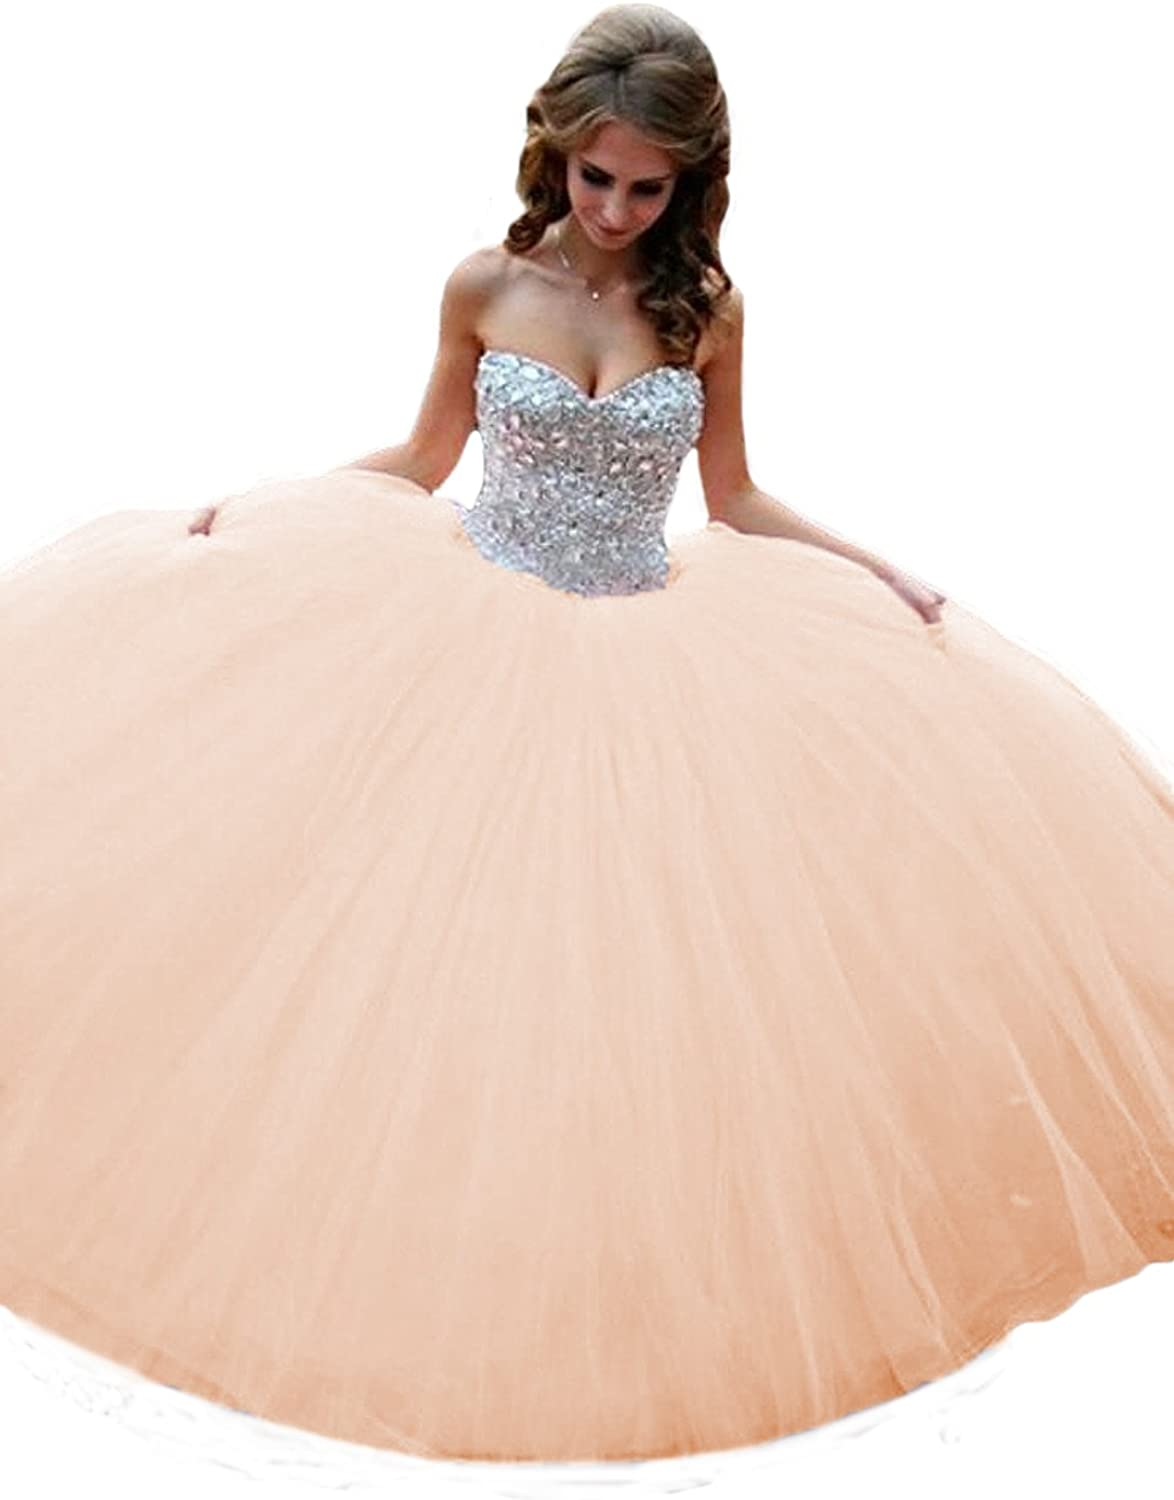 Kaitaijidian Women's Sweetheart Long Quinceanera Dresses Beaded Tulle Ball Gown Prom Dresses 647